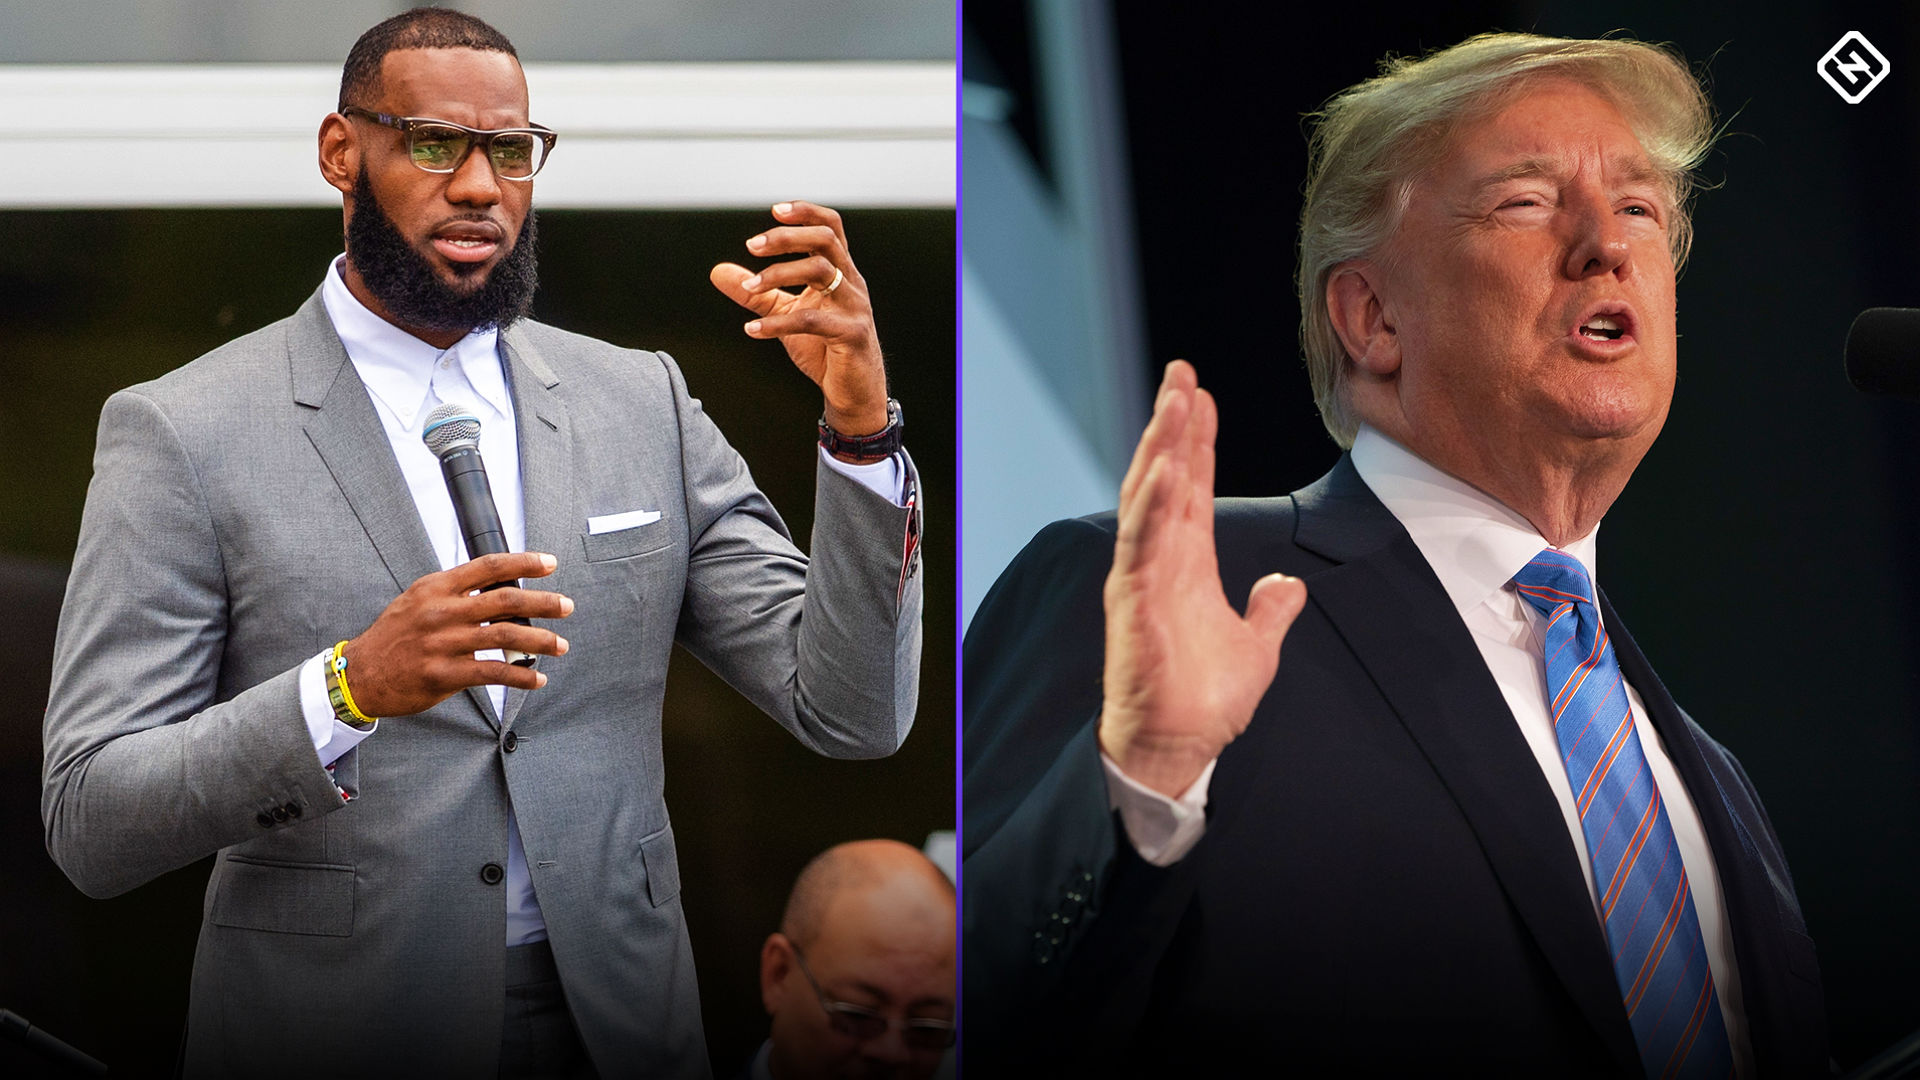 Athletes stand up for LeBron after Trump insult